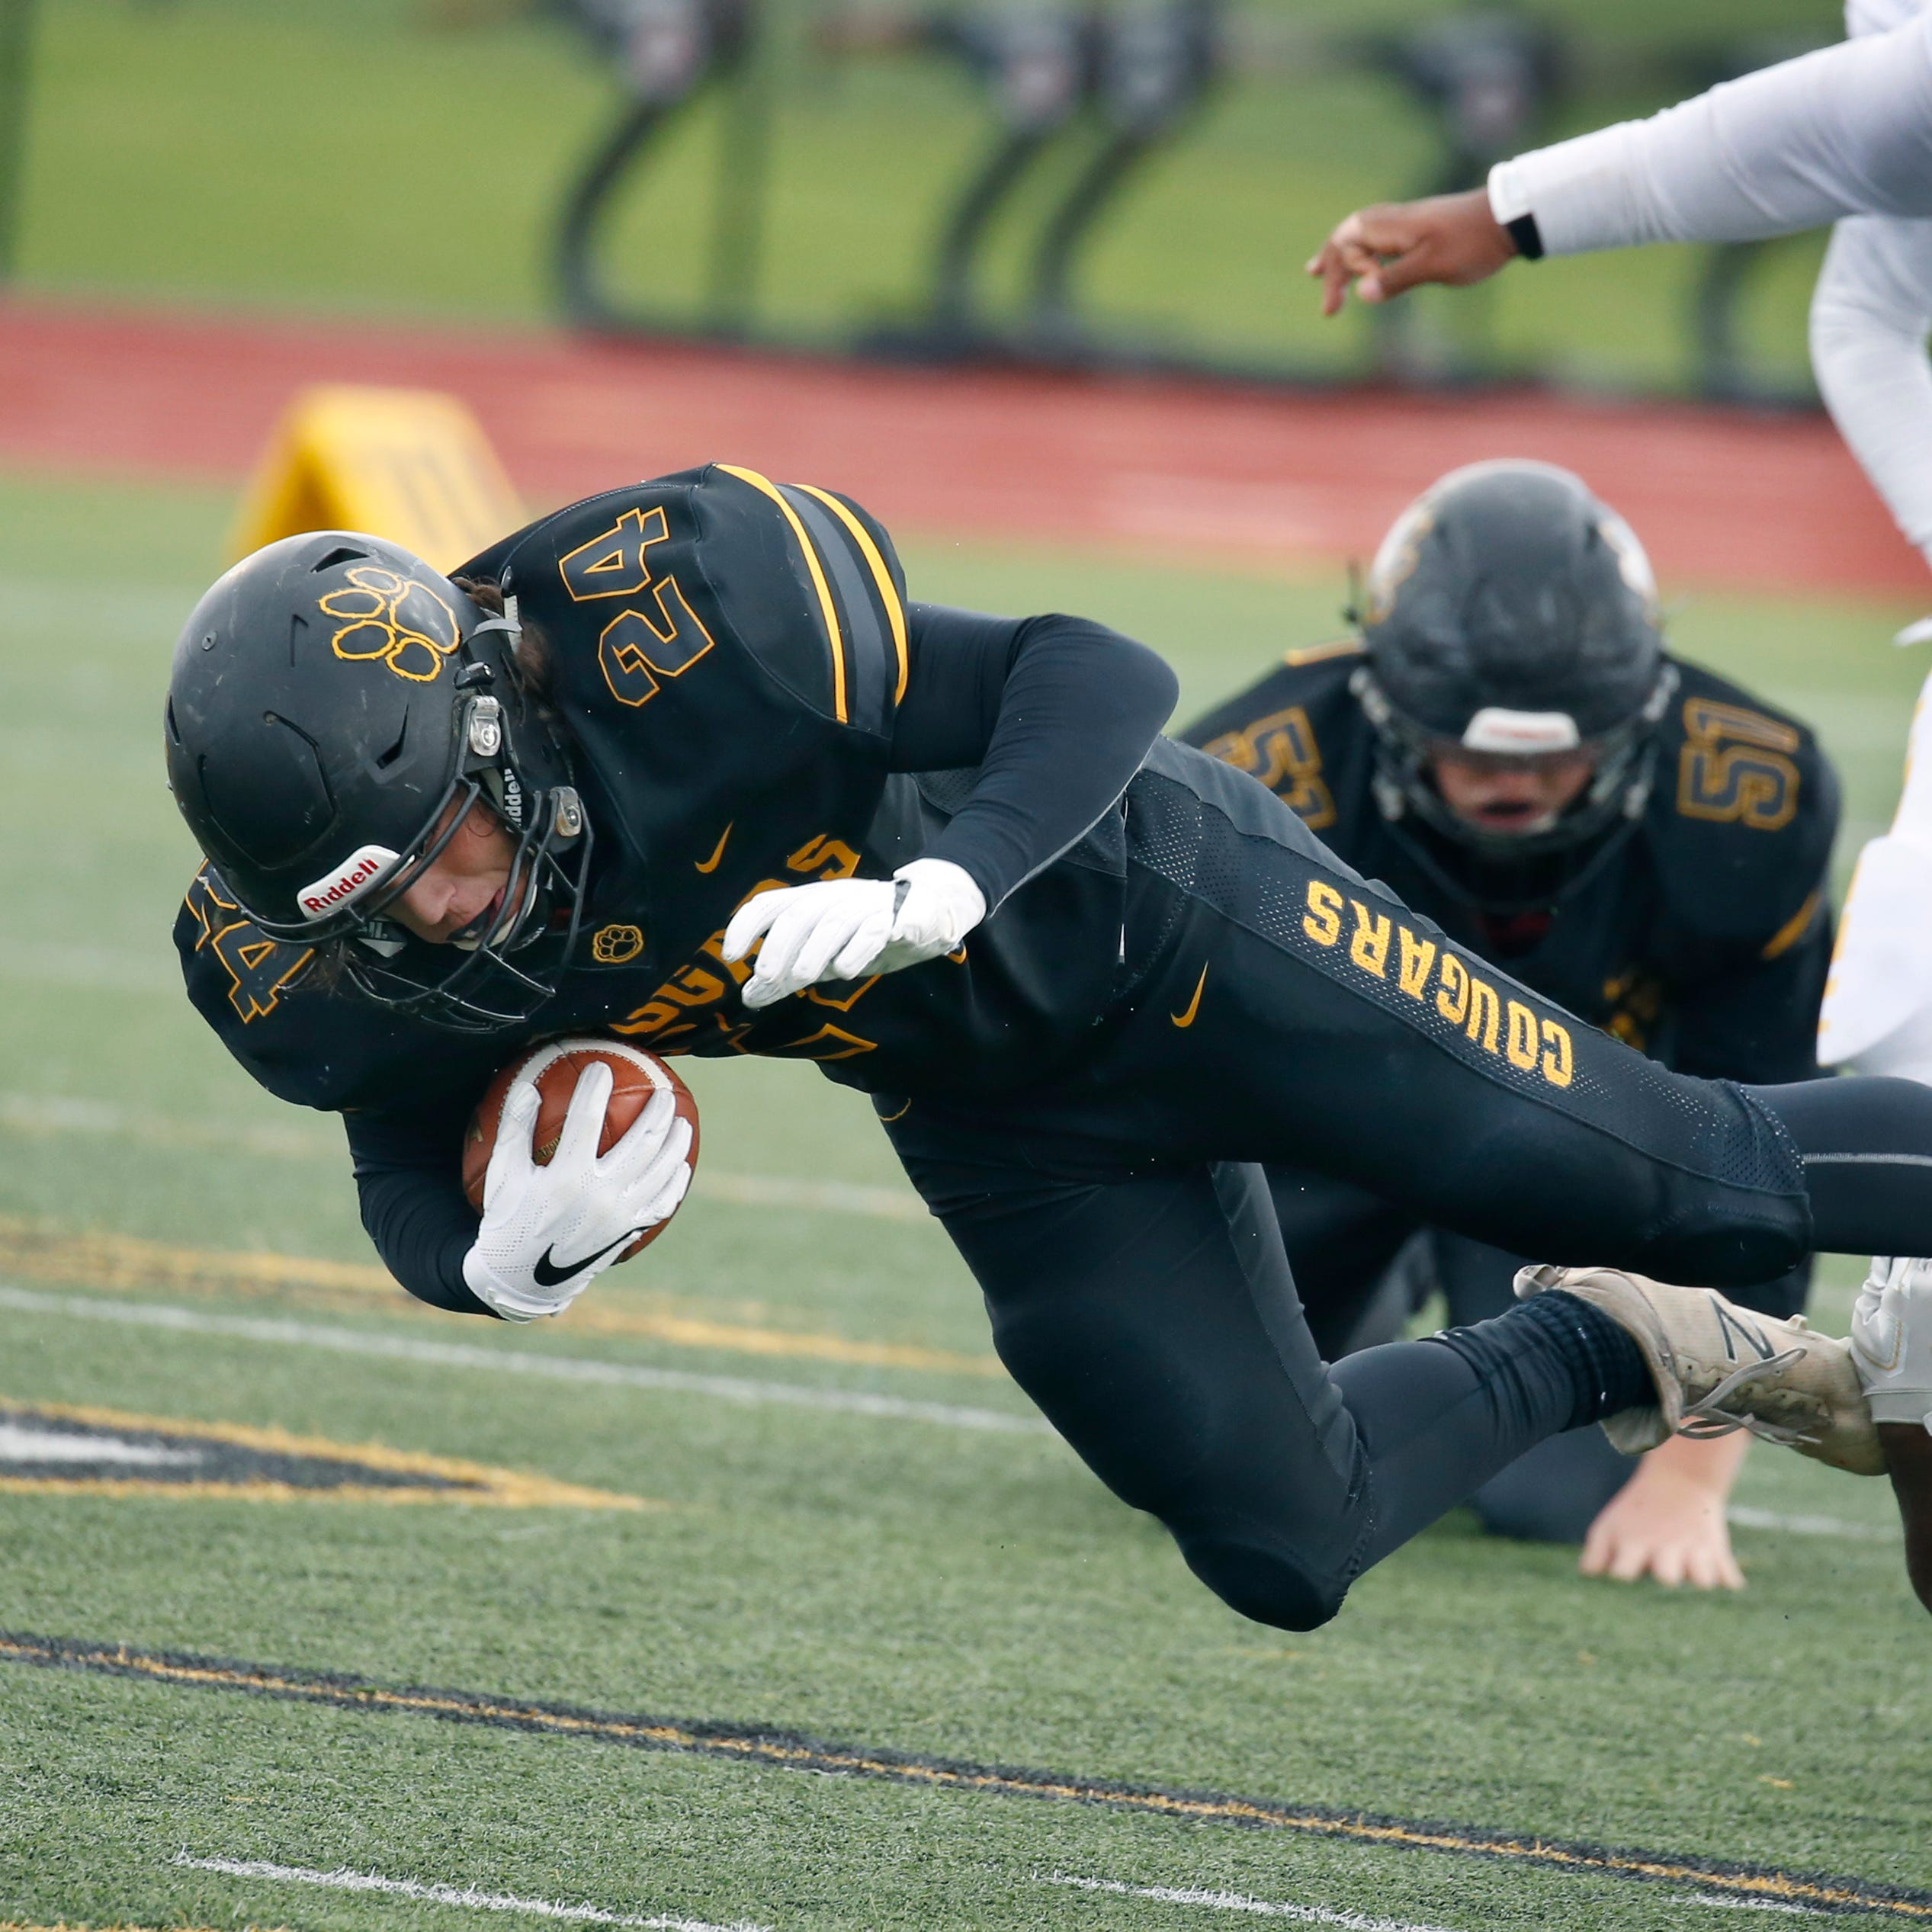 Cardiac Cougars: Honeoye Falls-Lima wins another thriller with TD in final seconds